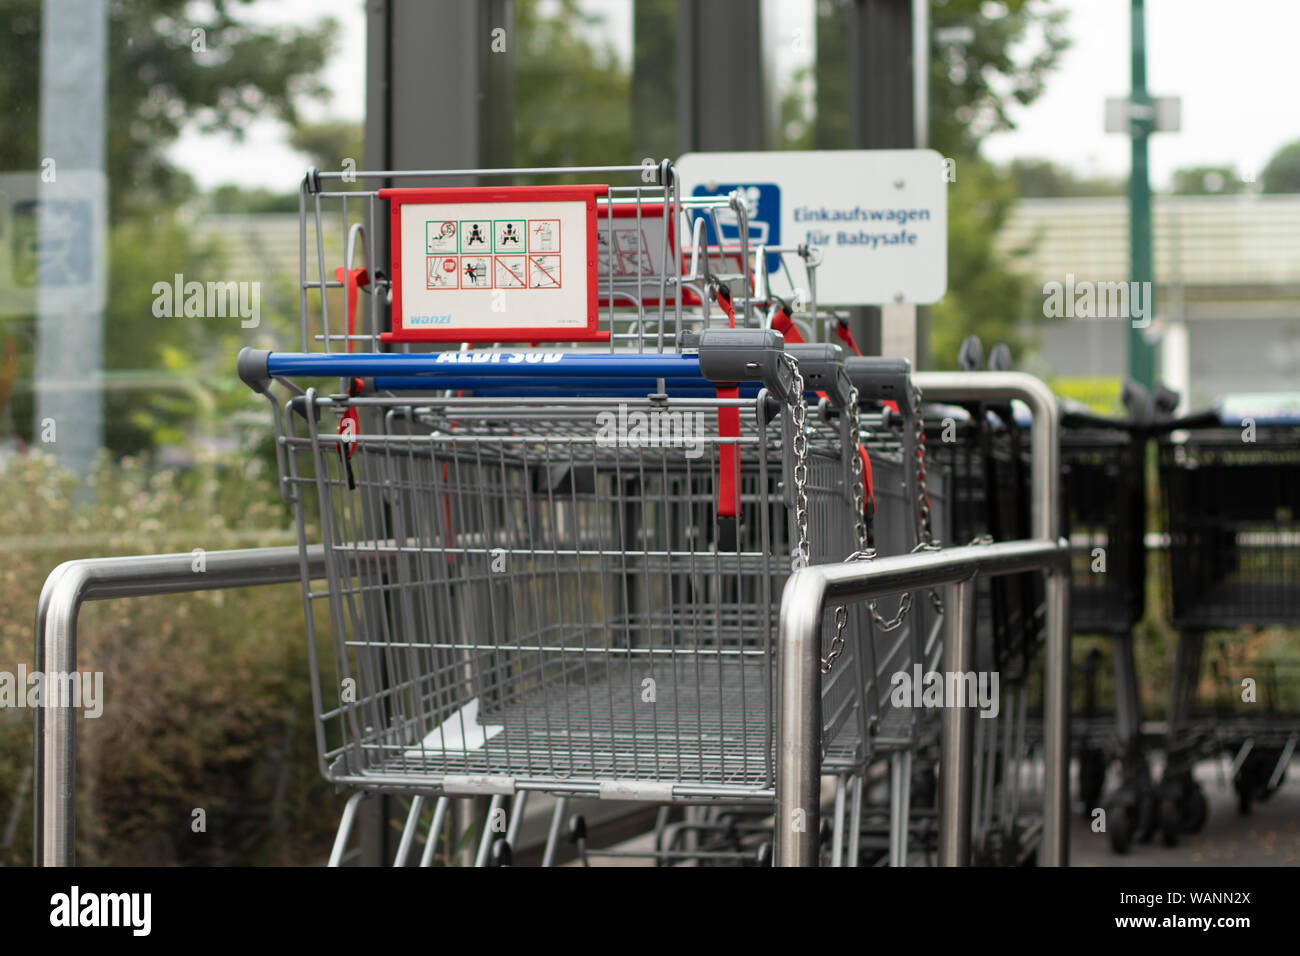 Trolley Parking High Resolution Stock Photography And Images Alamy